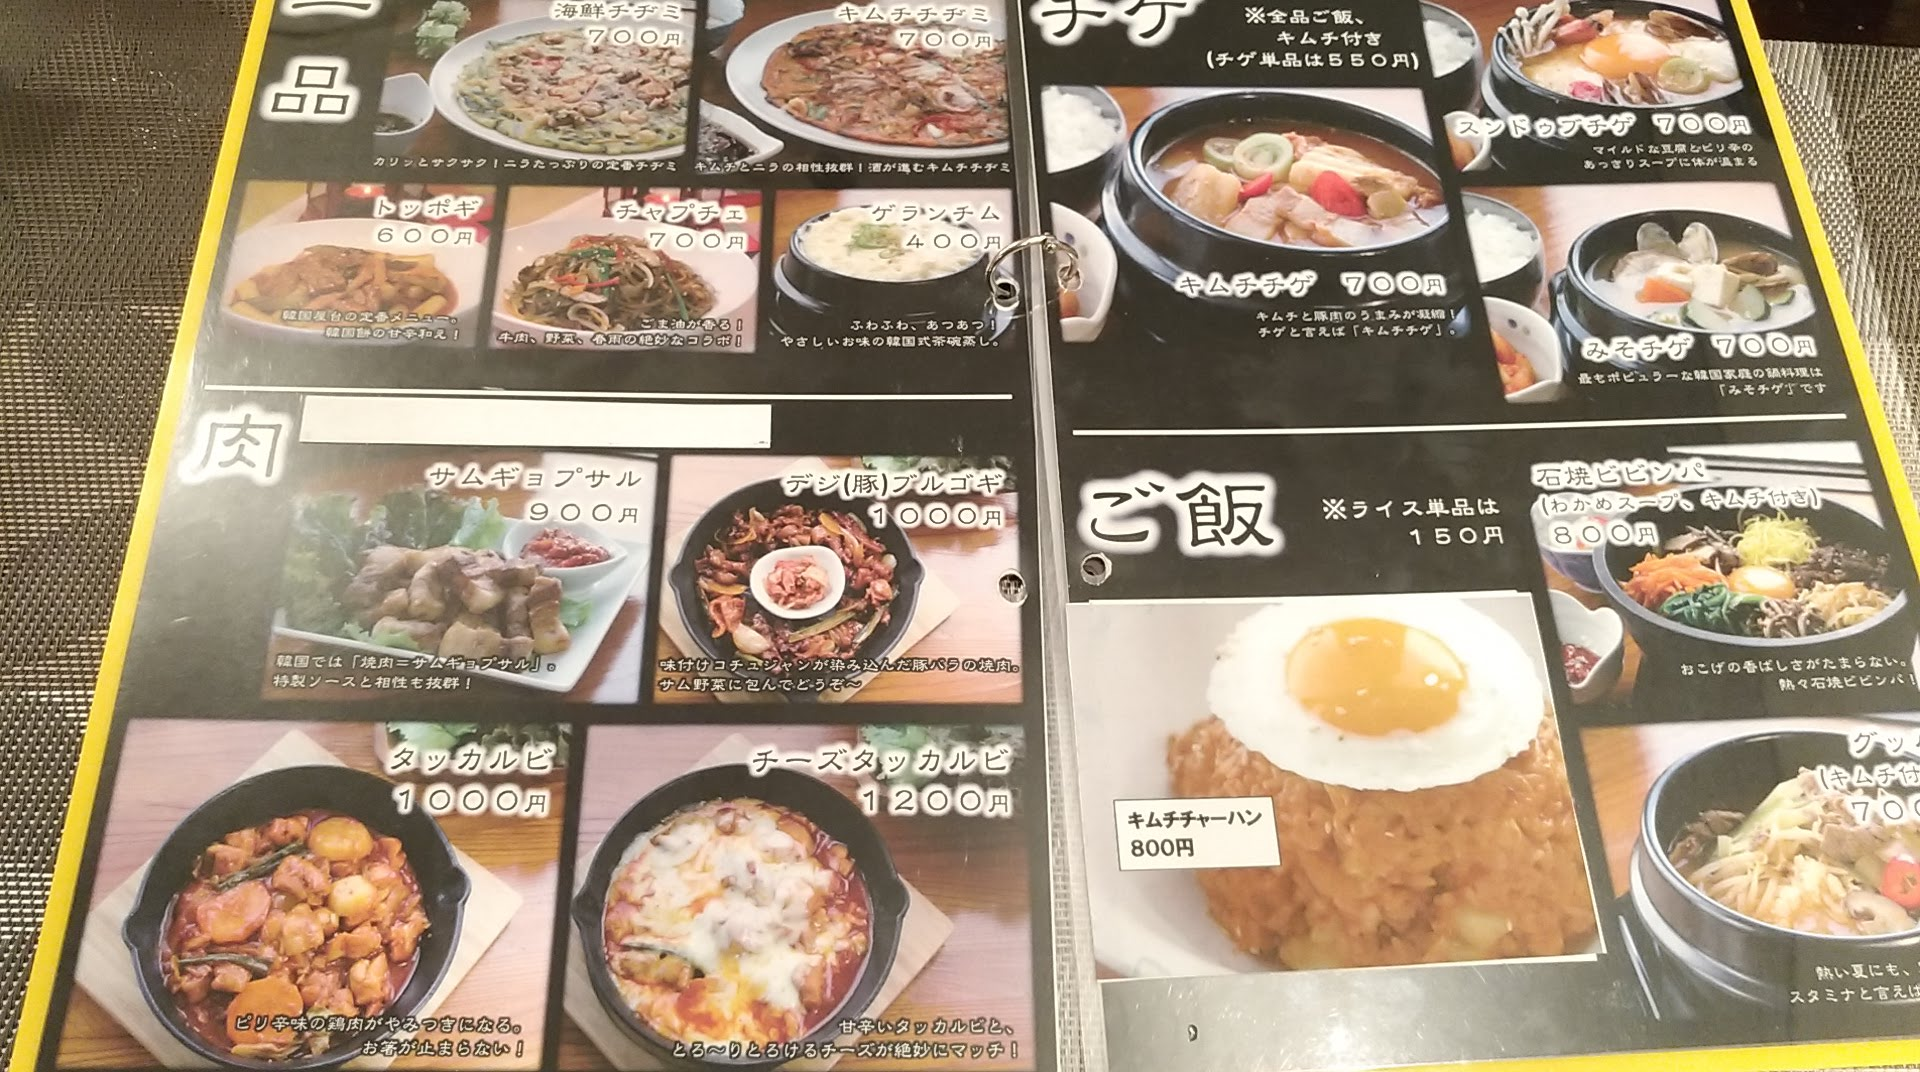 The menu of Gamihonten 2